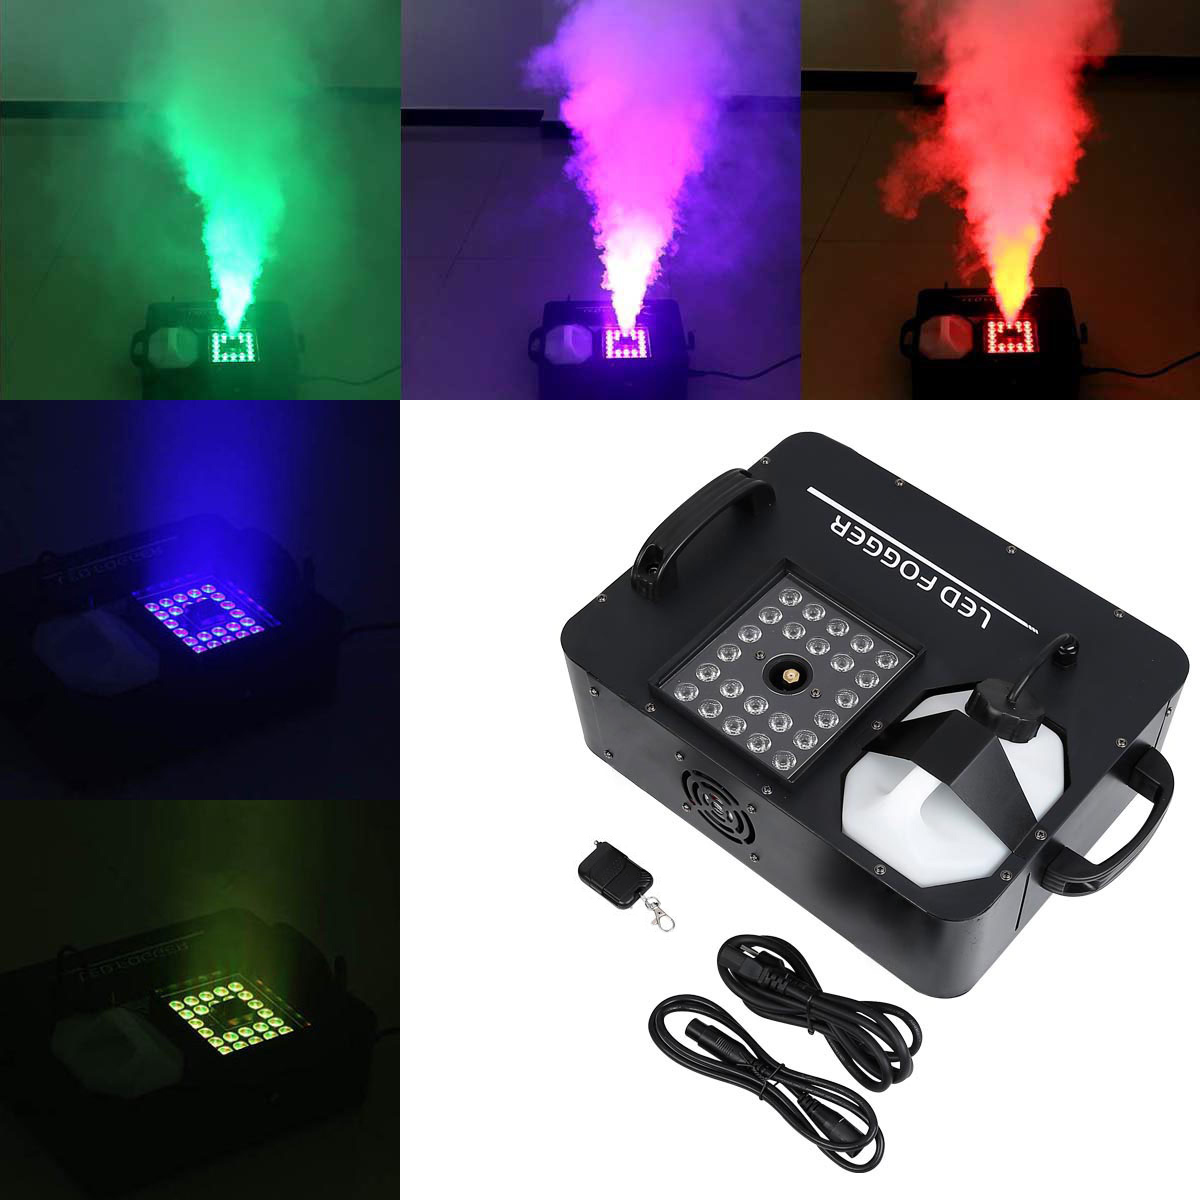 Commercial Lighting Lights & Lighting Led Fog Machine 1500w Rgb Color 3 In1 12*3w Led Lamp Led Smoke Machine Dmx 512 Controller 8 Minutes Heater